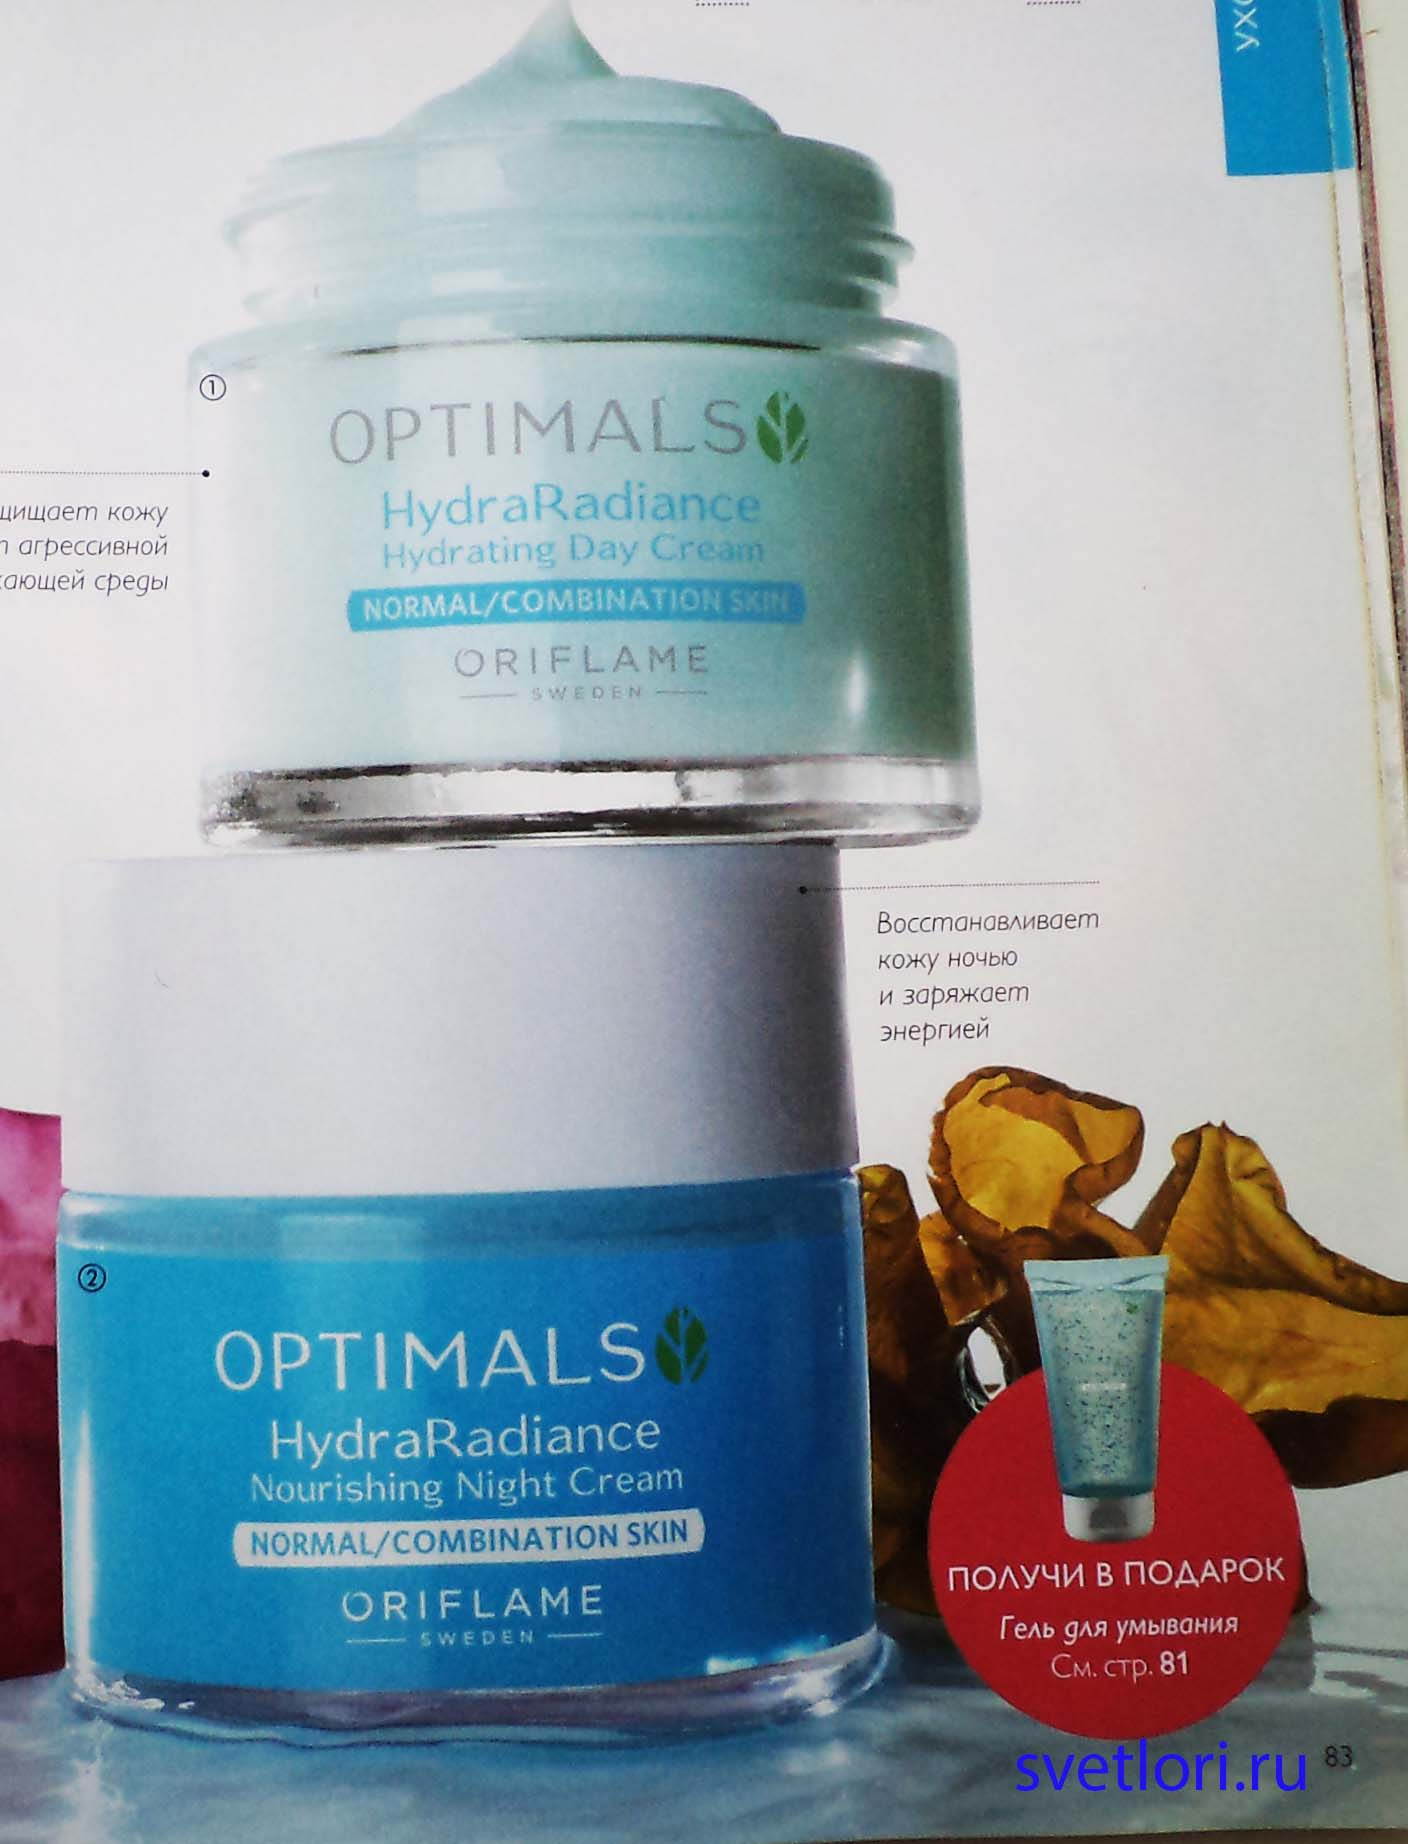 Optimals Hydra1